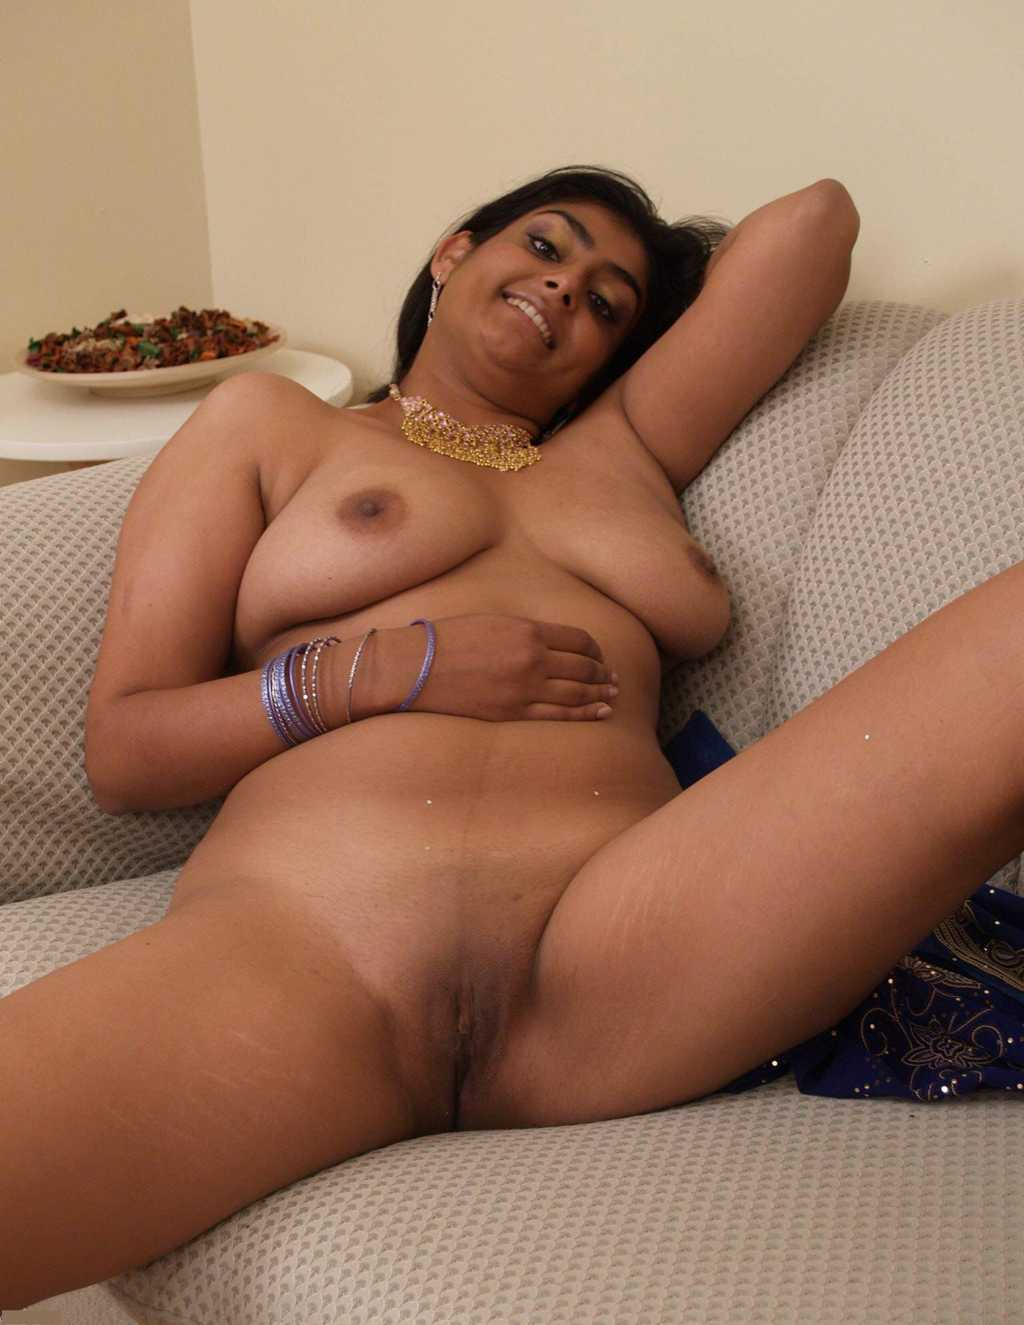 Meena indian actress nude excellent